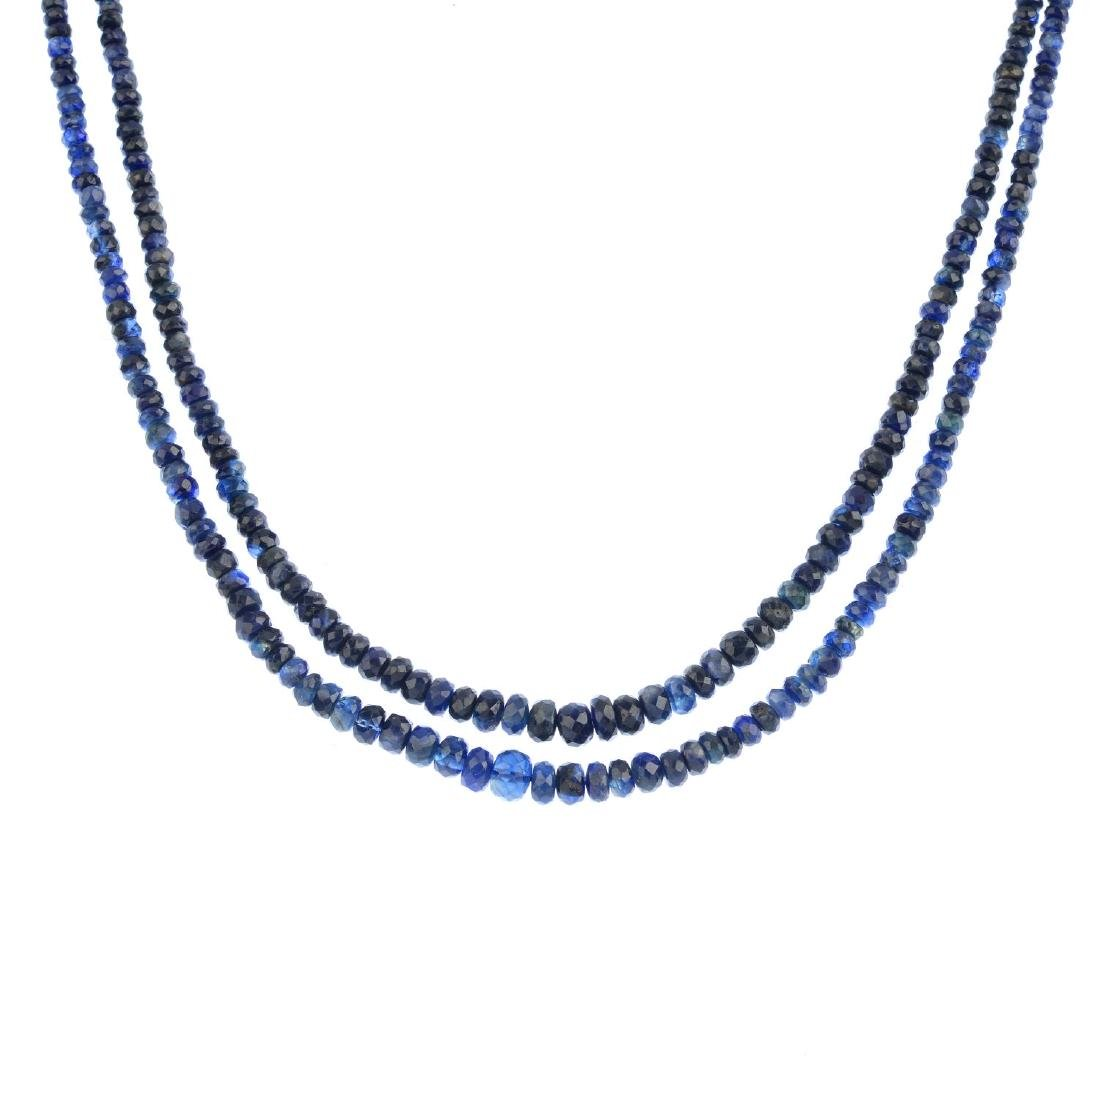 A sapphire necklace. Comprising a double-row of